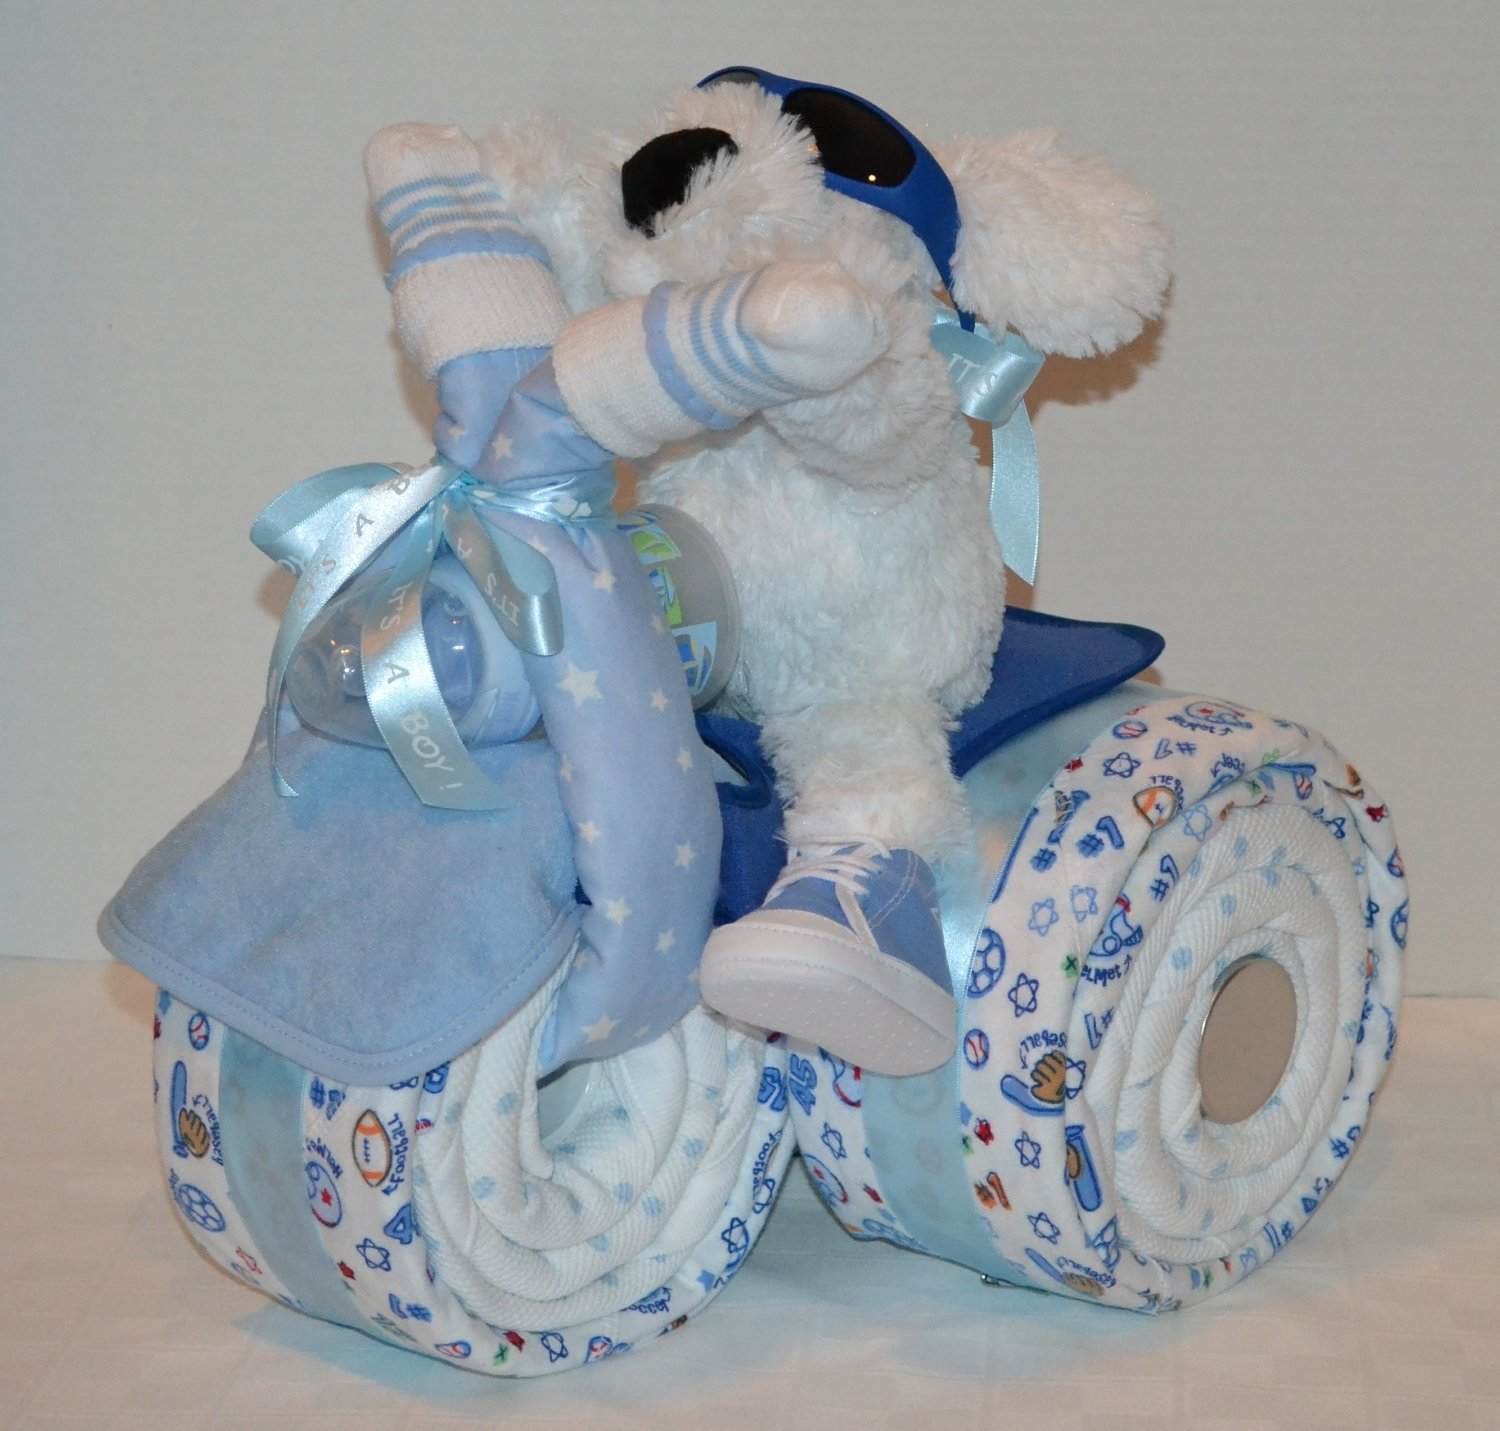 10 Wonderful Unique Baby Shower Gift Ideas ideas for a baby boy baby shower omega center ideas for baby 2021